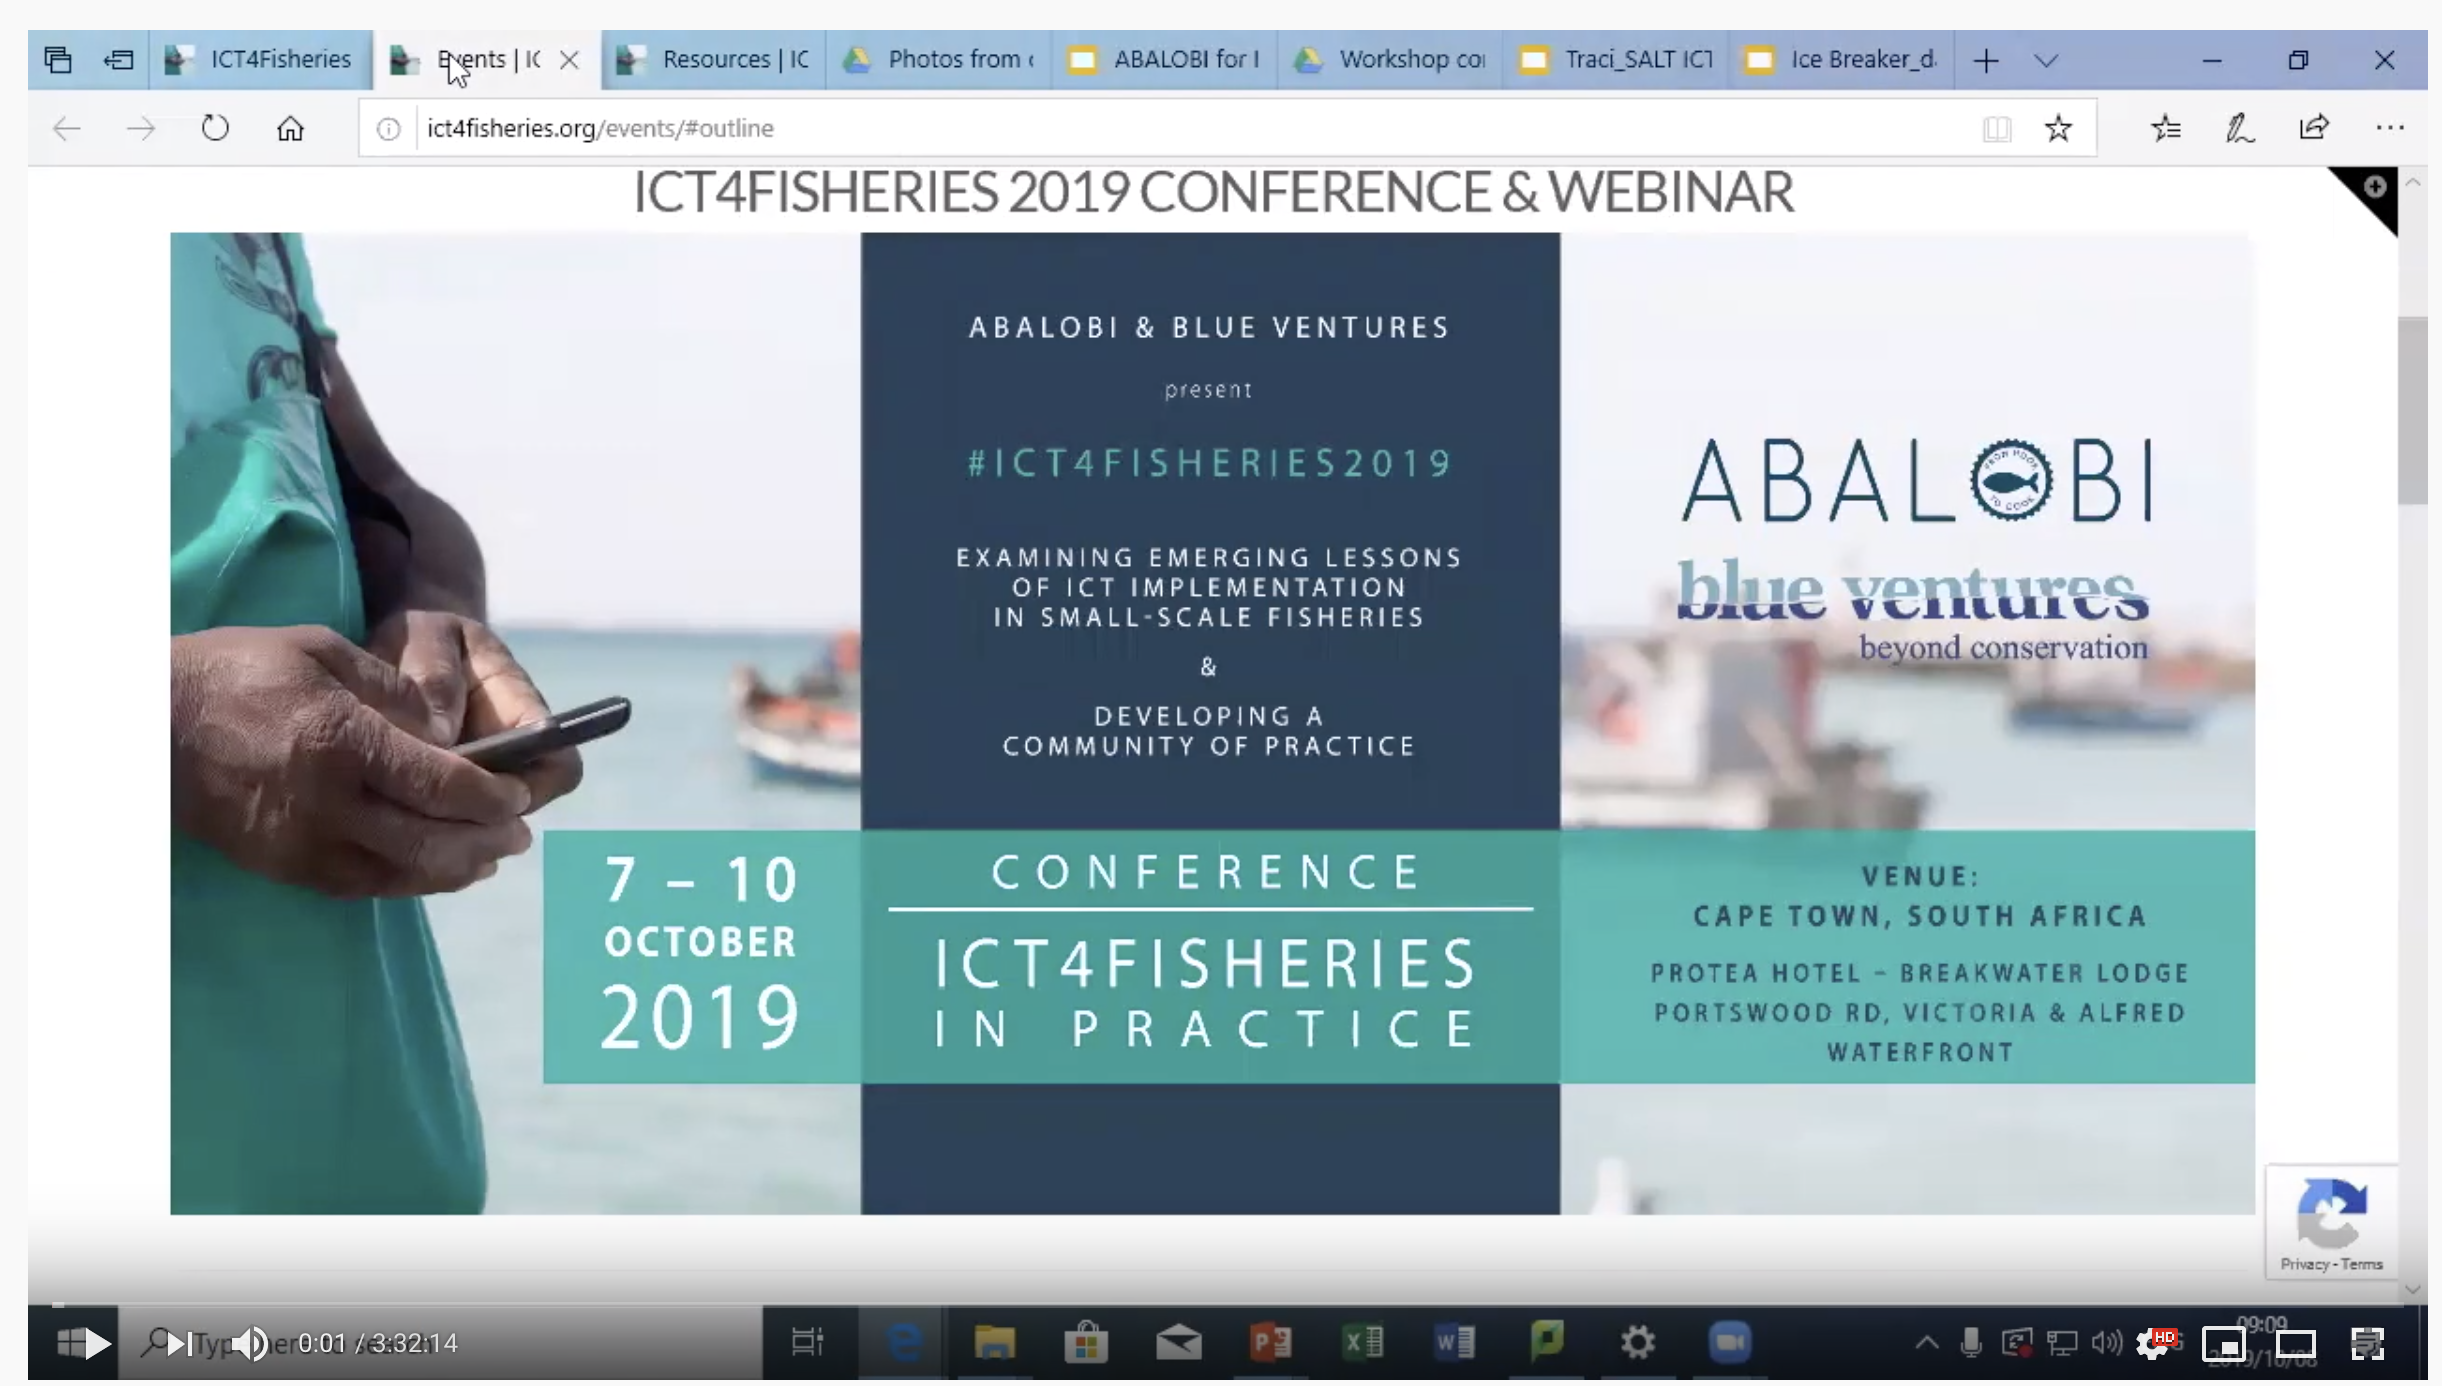 ICT4Fisheries Conference 2019 Webinar Day 2